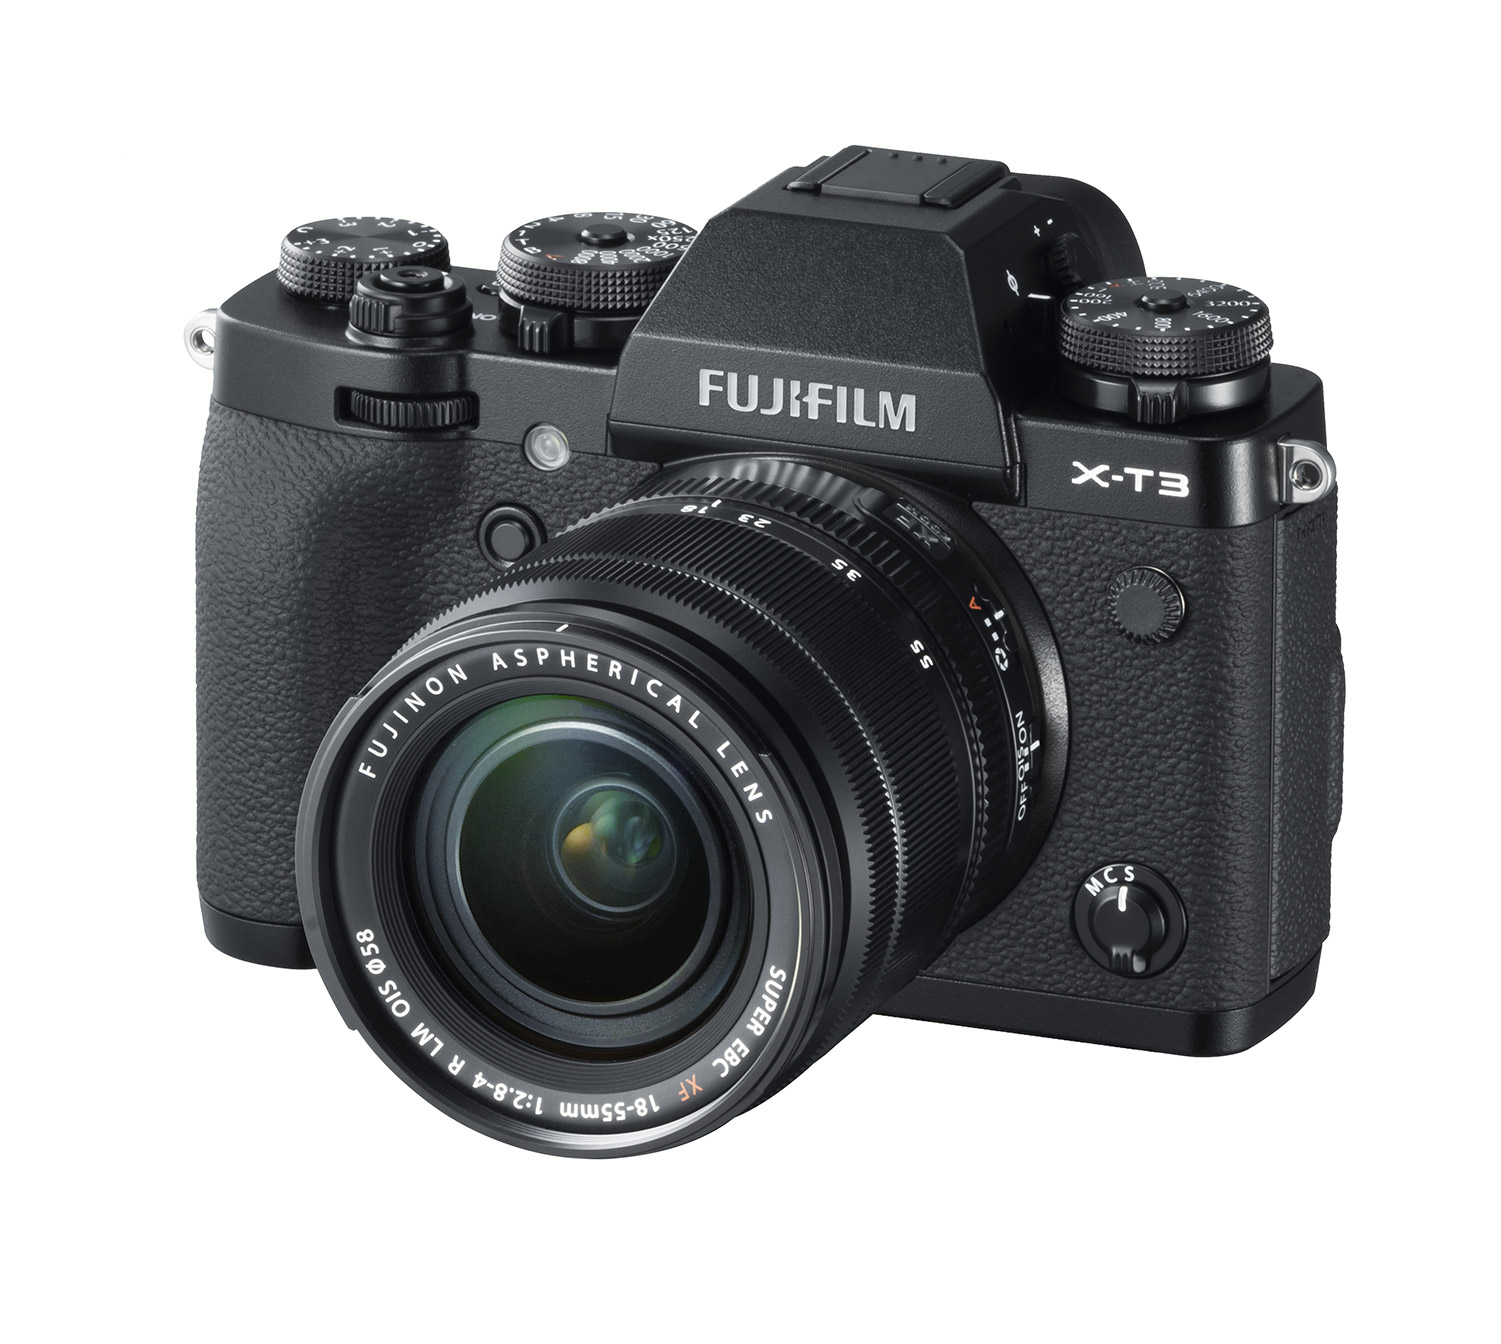 Image: Fuji's retro styling, mixed with cutting edge features make for a very exciting camera...